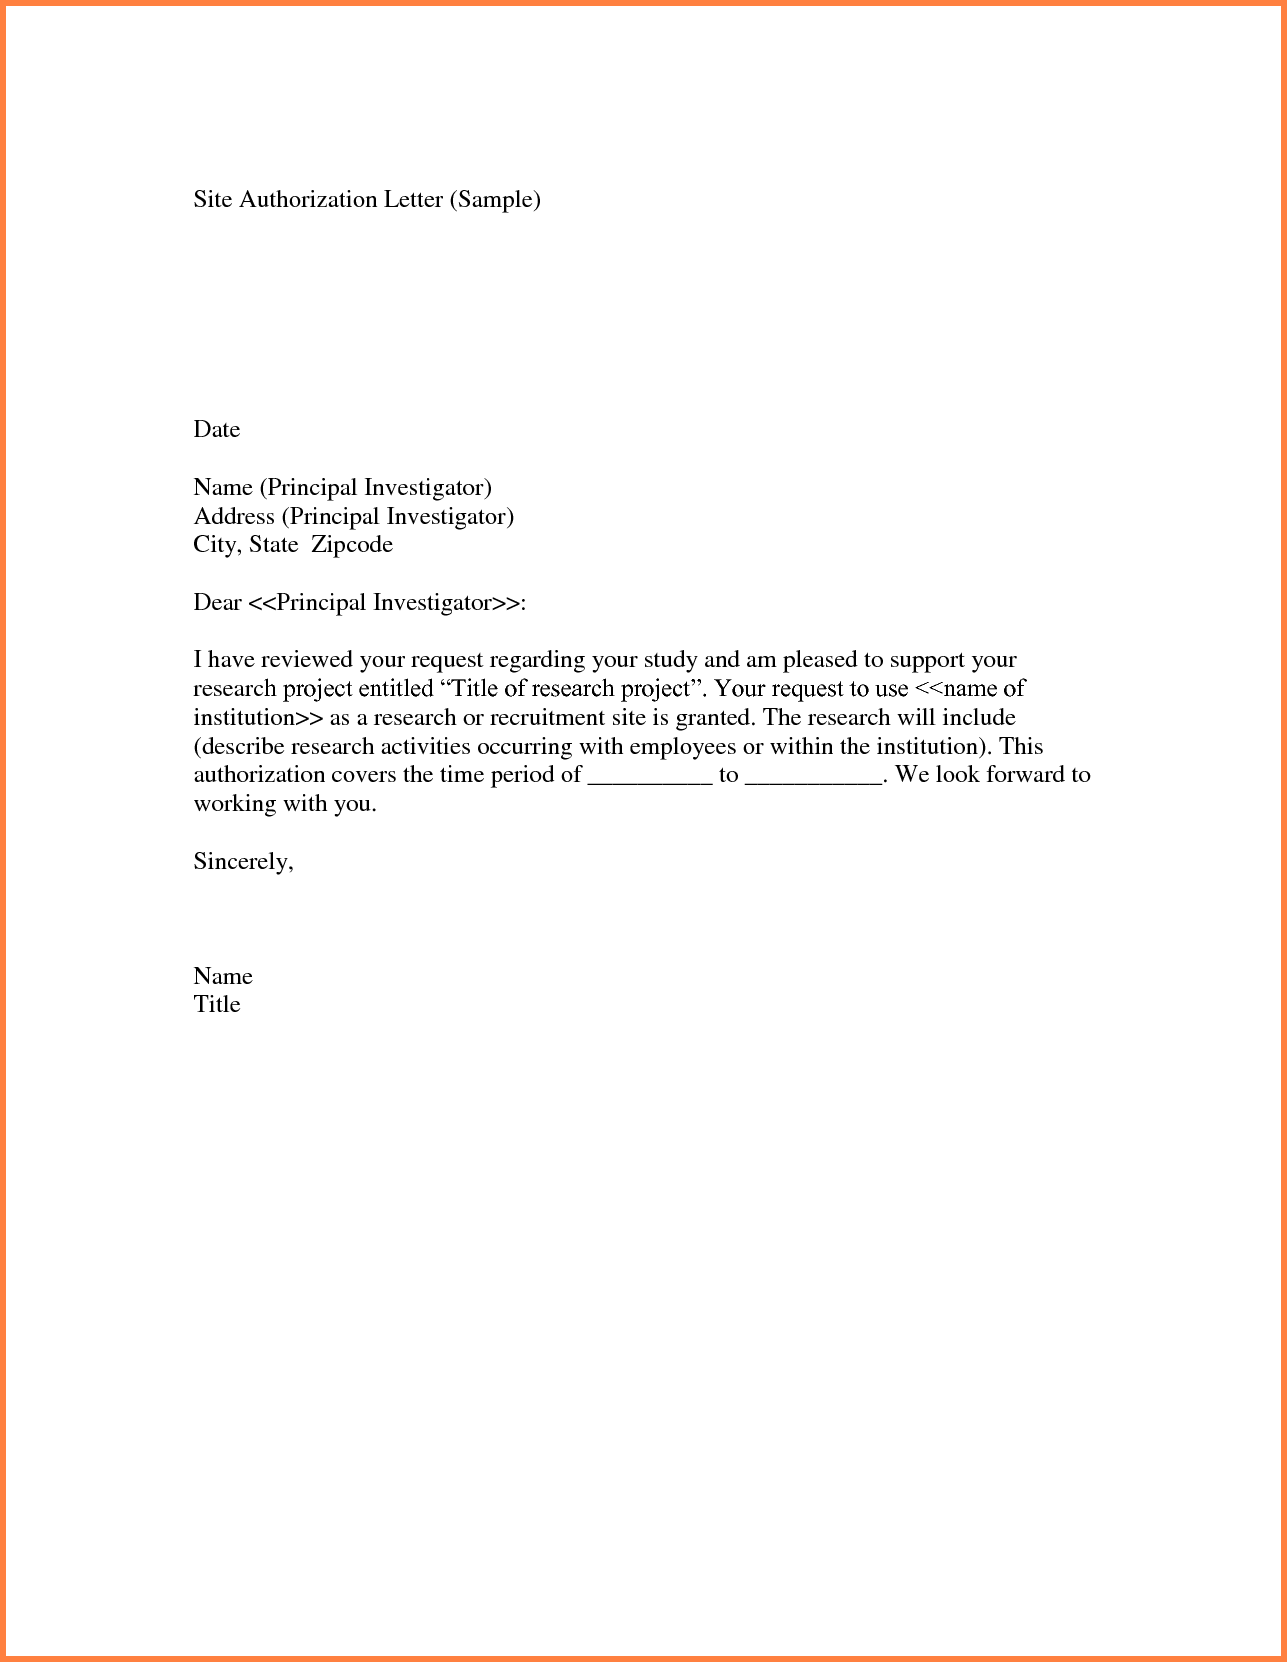 Authorization Letter Sample Minor Travel Lettermple Child Care